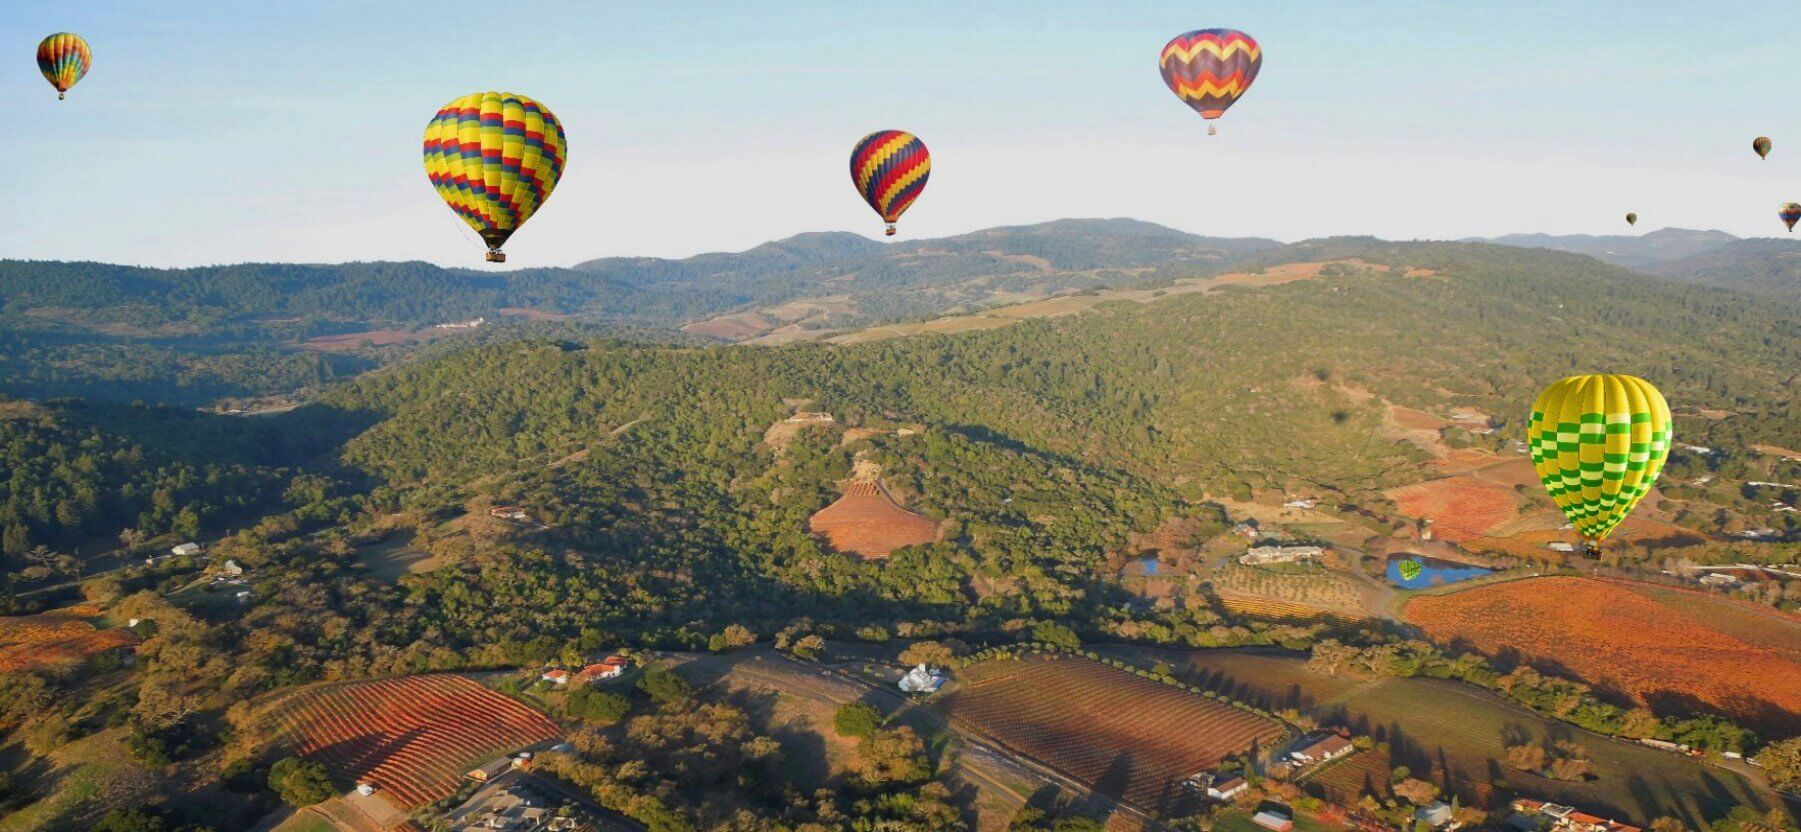 Thrilling-Hot-Air-Balloon-Rides-Valley